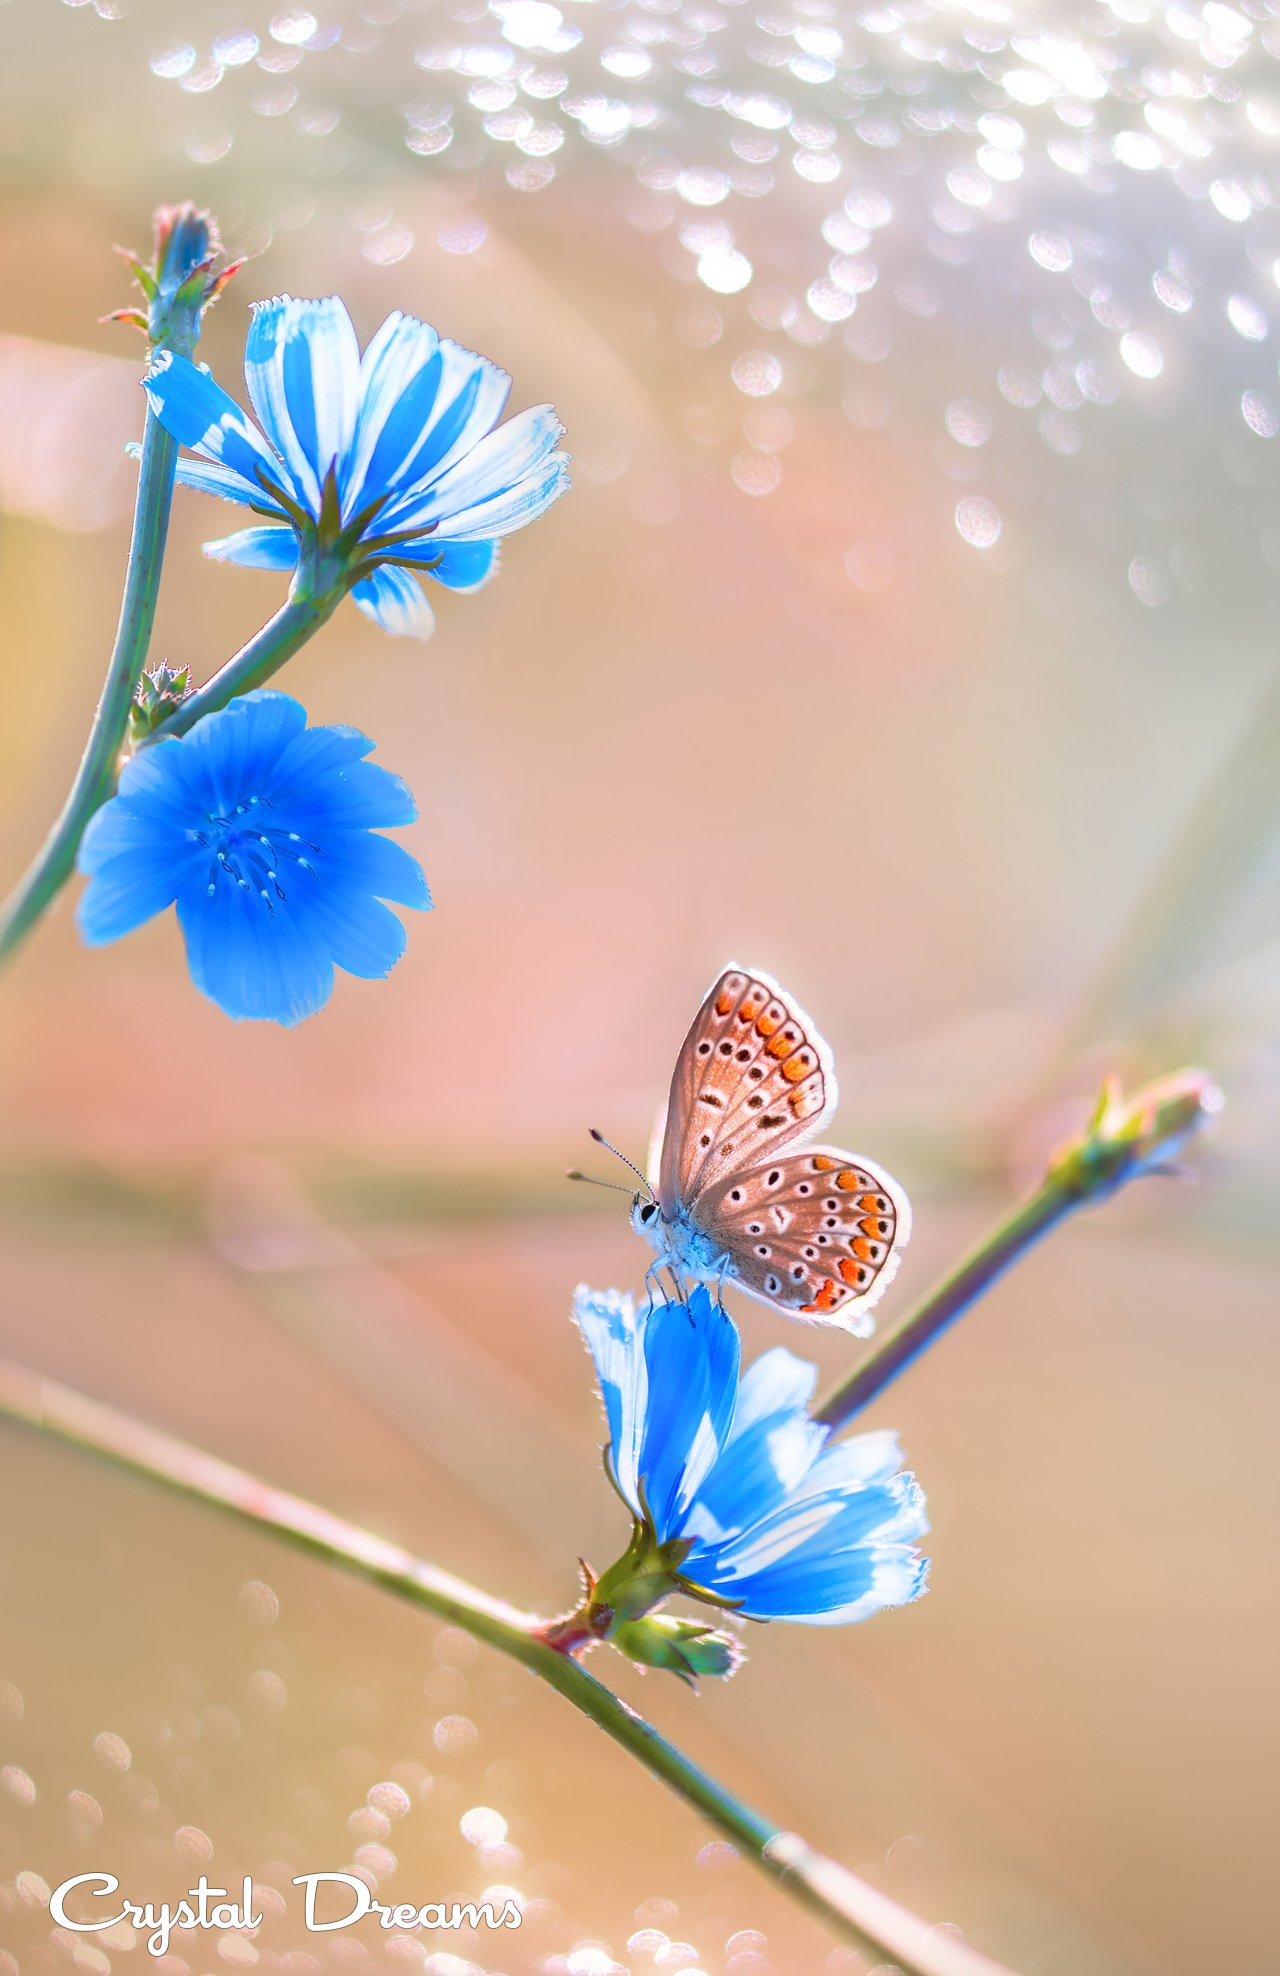 Art, Butterfly, Color, Crystal Dreams, Flowers, Light, Macro, Magic, Meadow, Morning, Nature, Крылова Татьяна